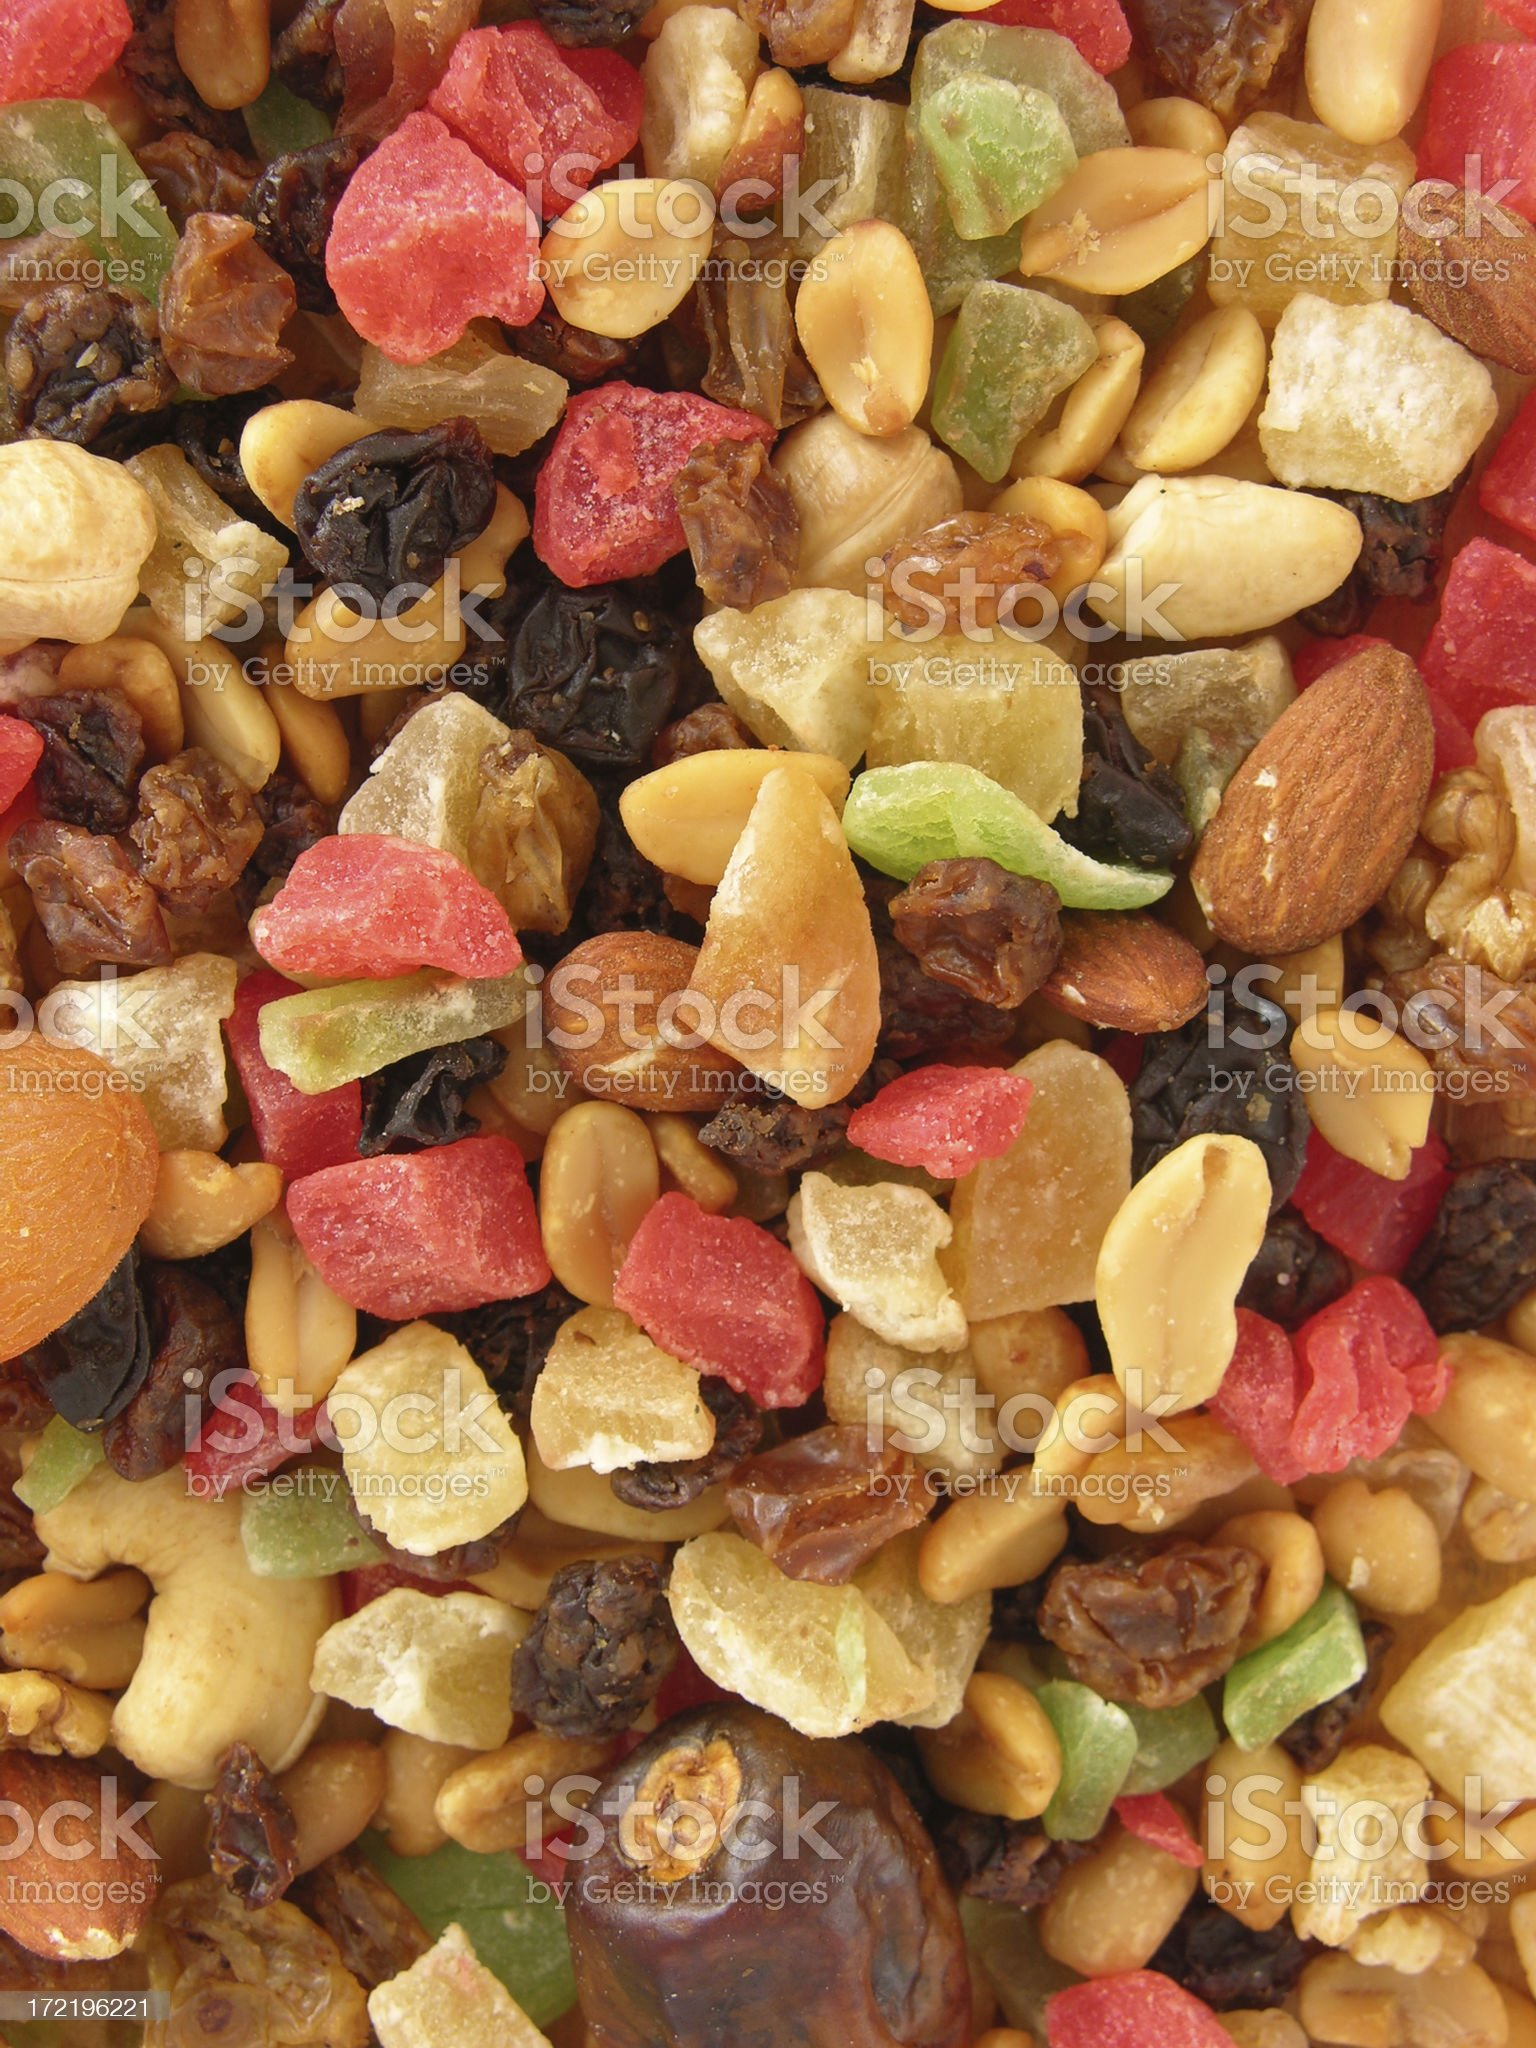 Nuts 'n fruits background royalty-free stock photo